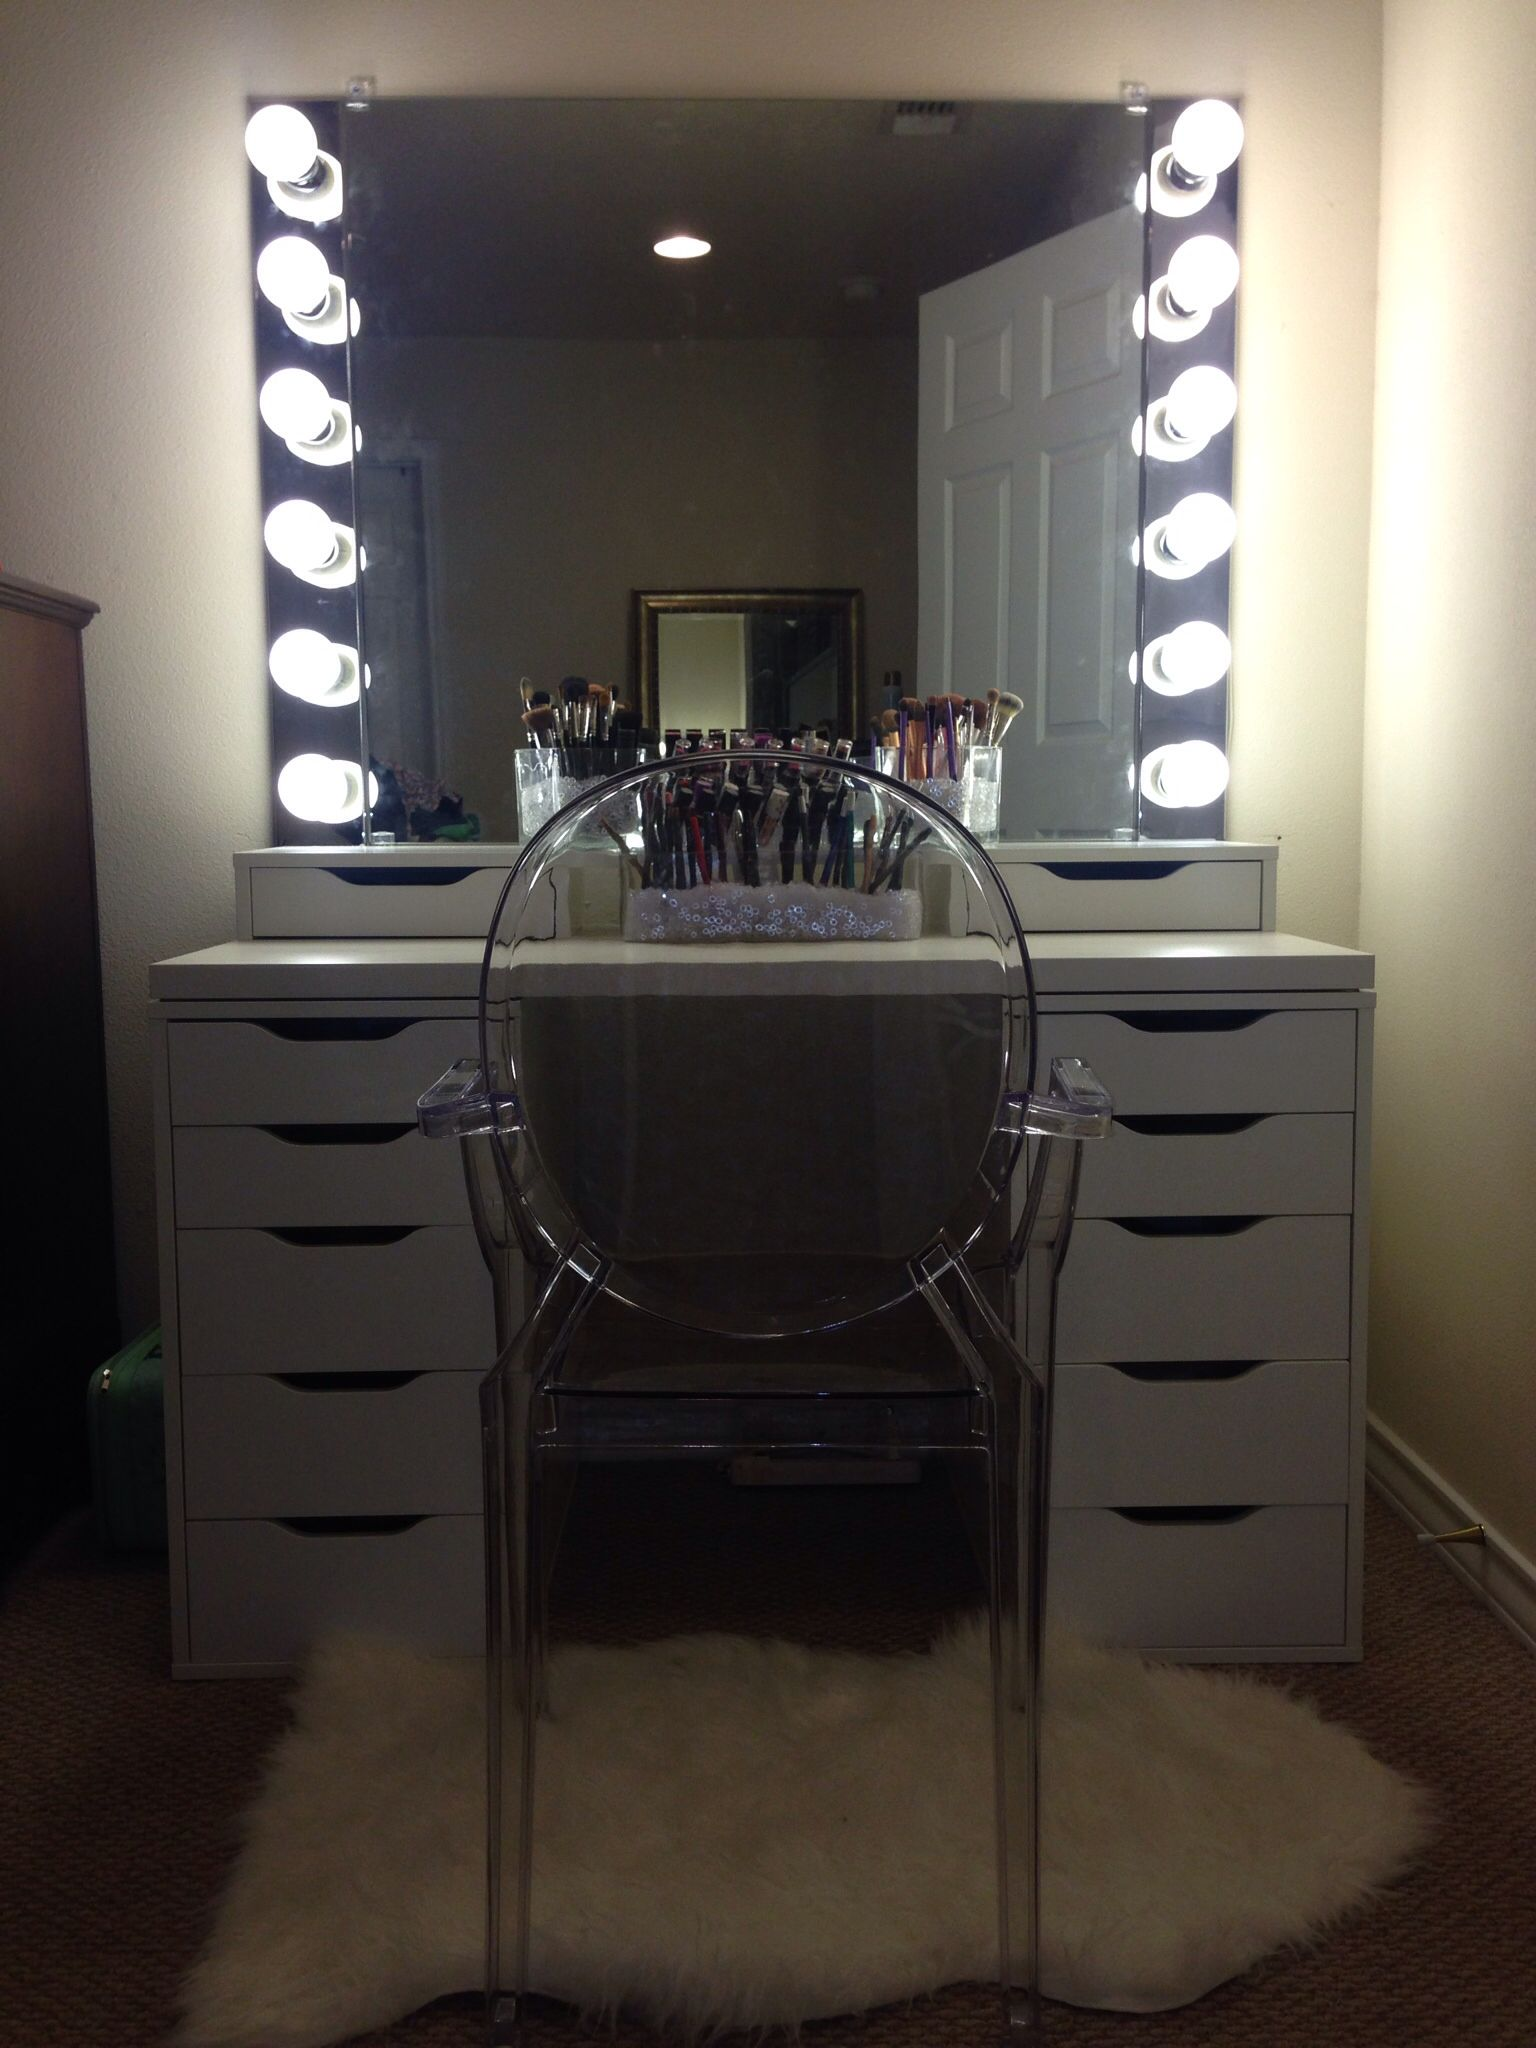 Diy Ikea Vanity With Lights Beauty Pinterest Ikea